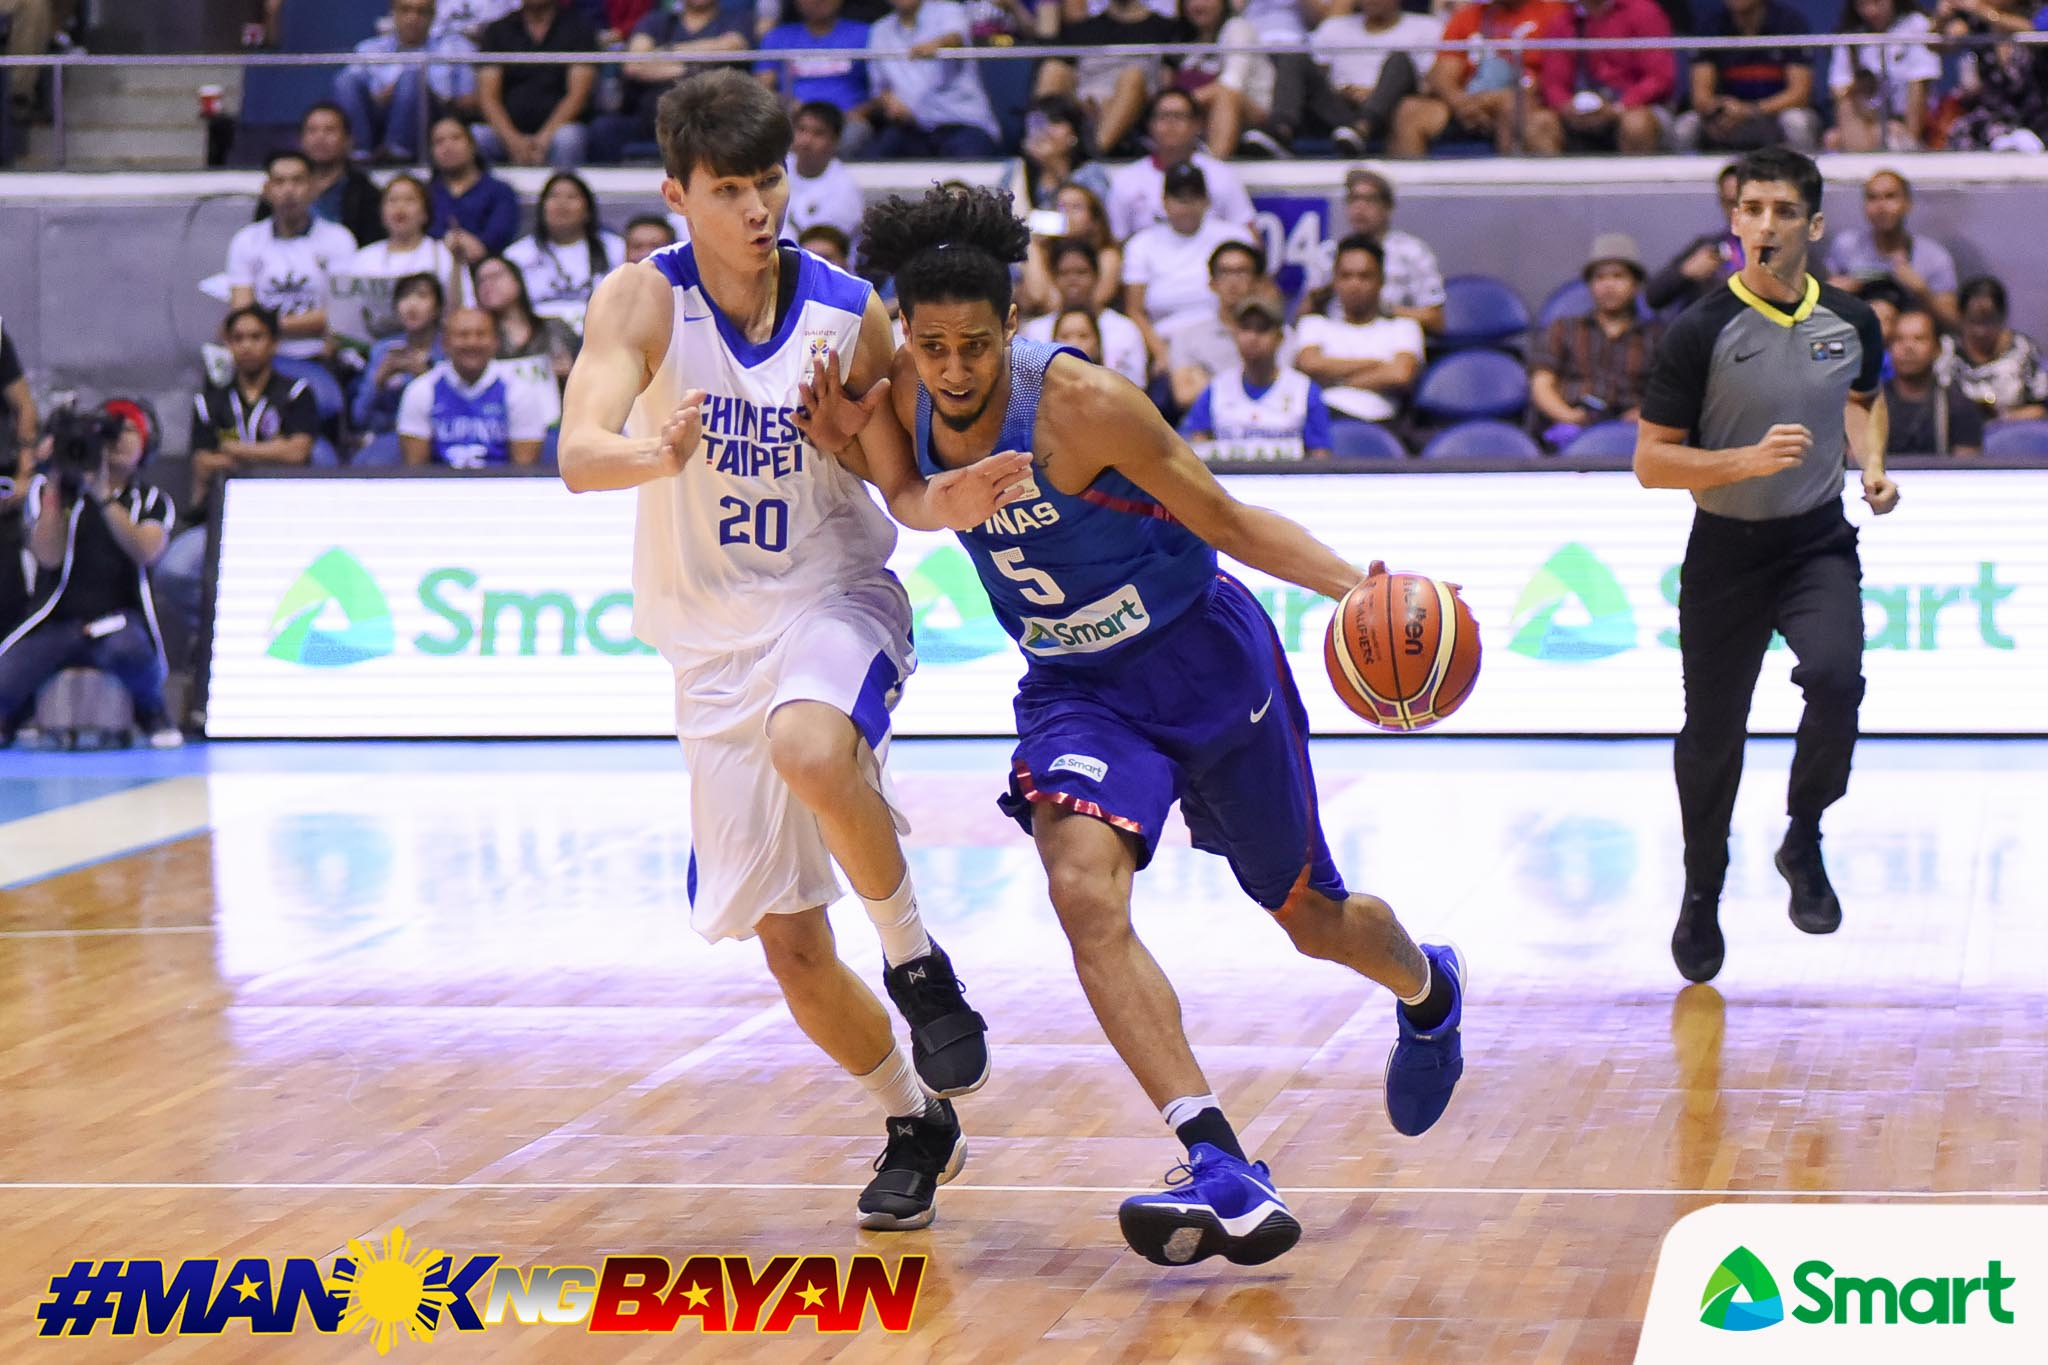 Philippine Sports News - Tiebreaker Times Chooks-to-Go honors 10-year SMART Gilas veteran Gabe Norwood 2019 FIBA World Cup Qualifiers Basketball Gilas Pilipinas News  Ronald Mascarinas Gabe Norwood Chooks-to-Go 2019 FIBA World Cup Qualifiers Group B